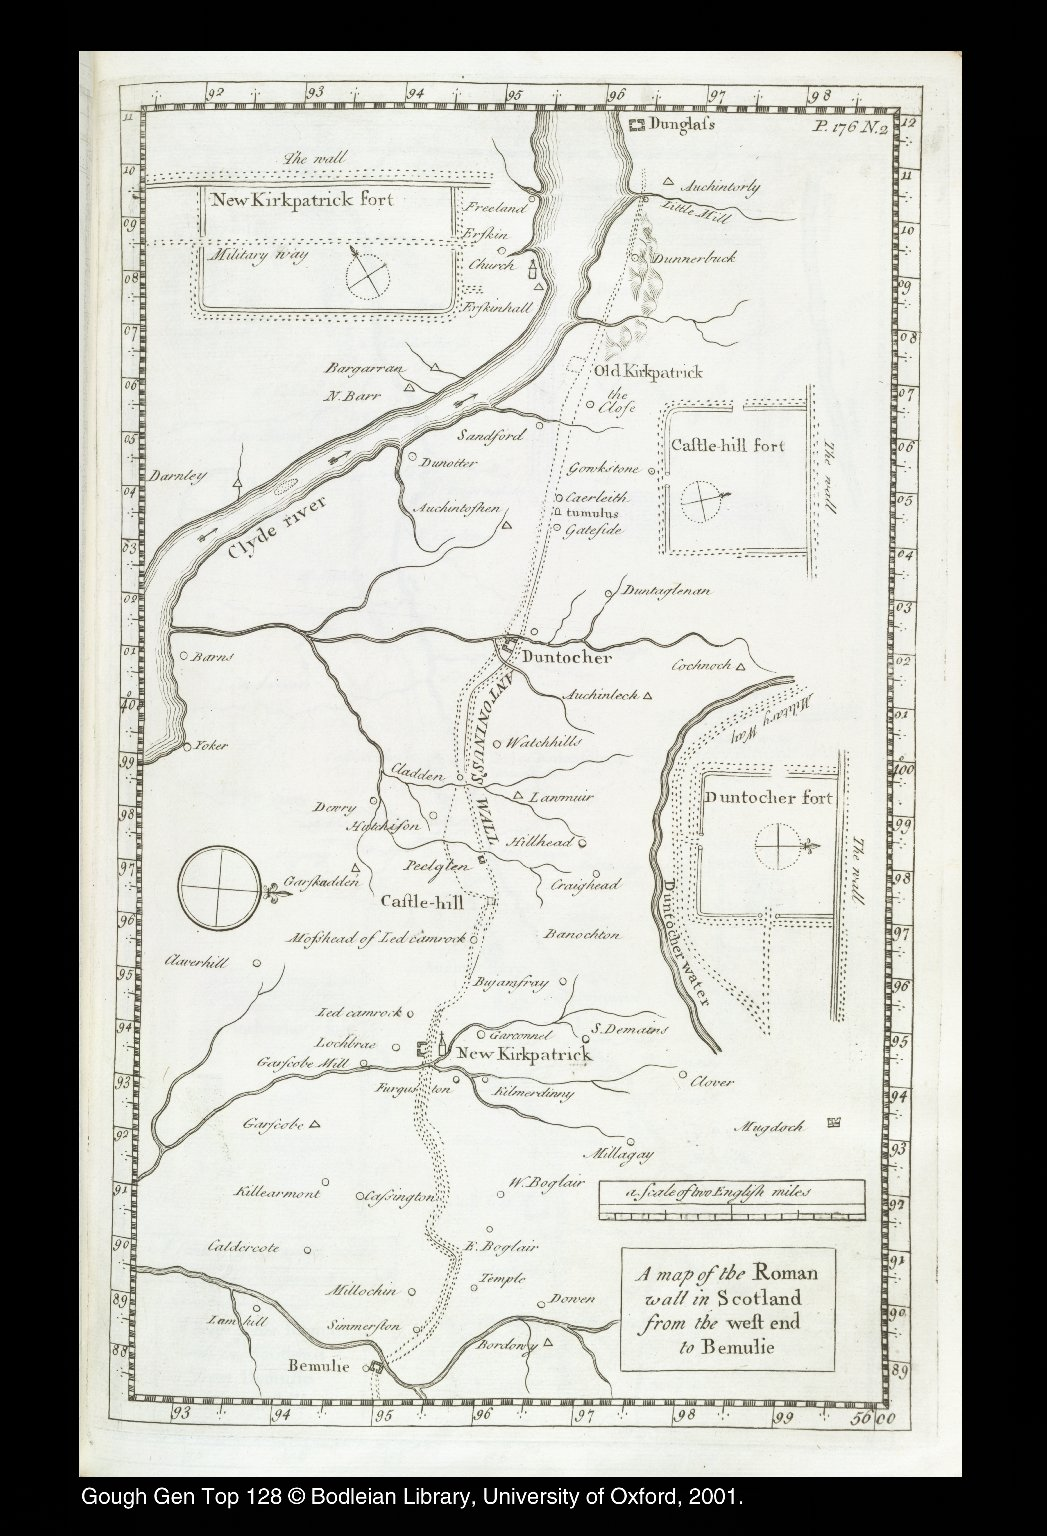 A map of the Roman wall in Scotland from the west end to Bemulie [1 of 1]